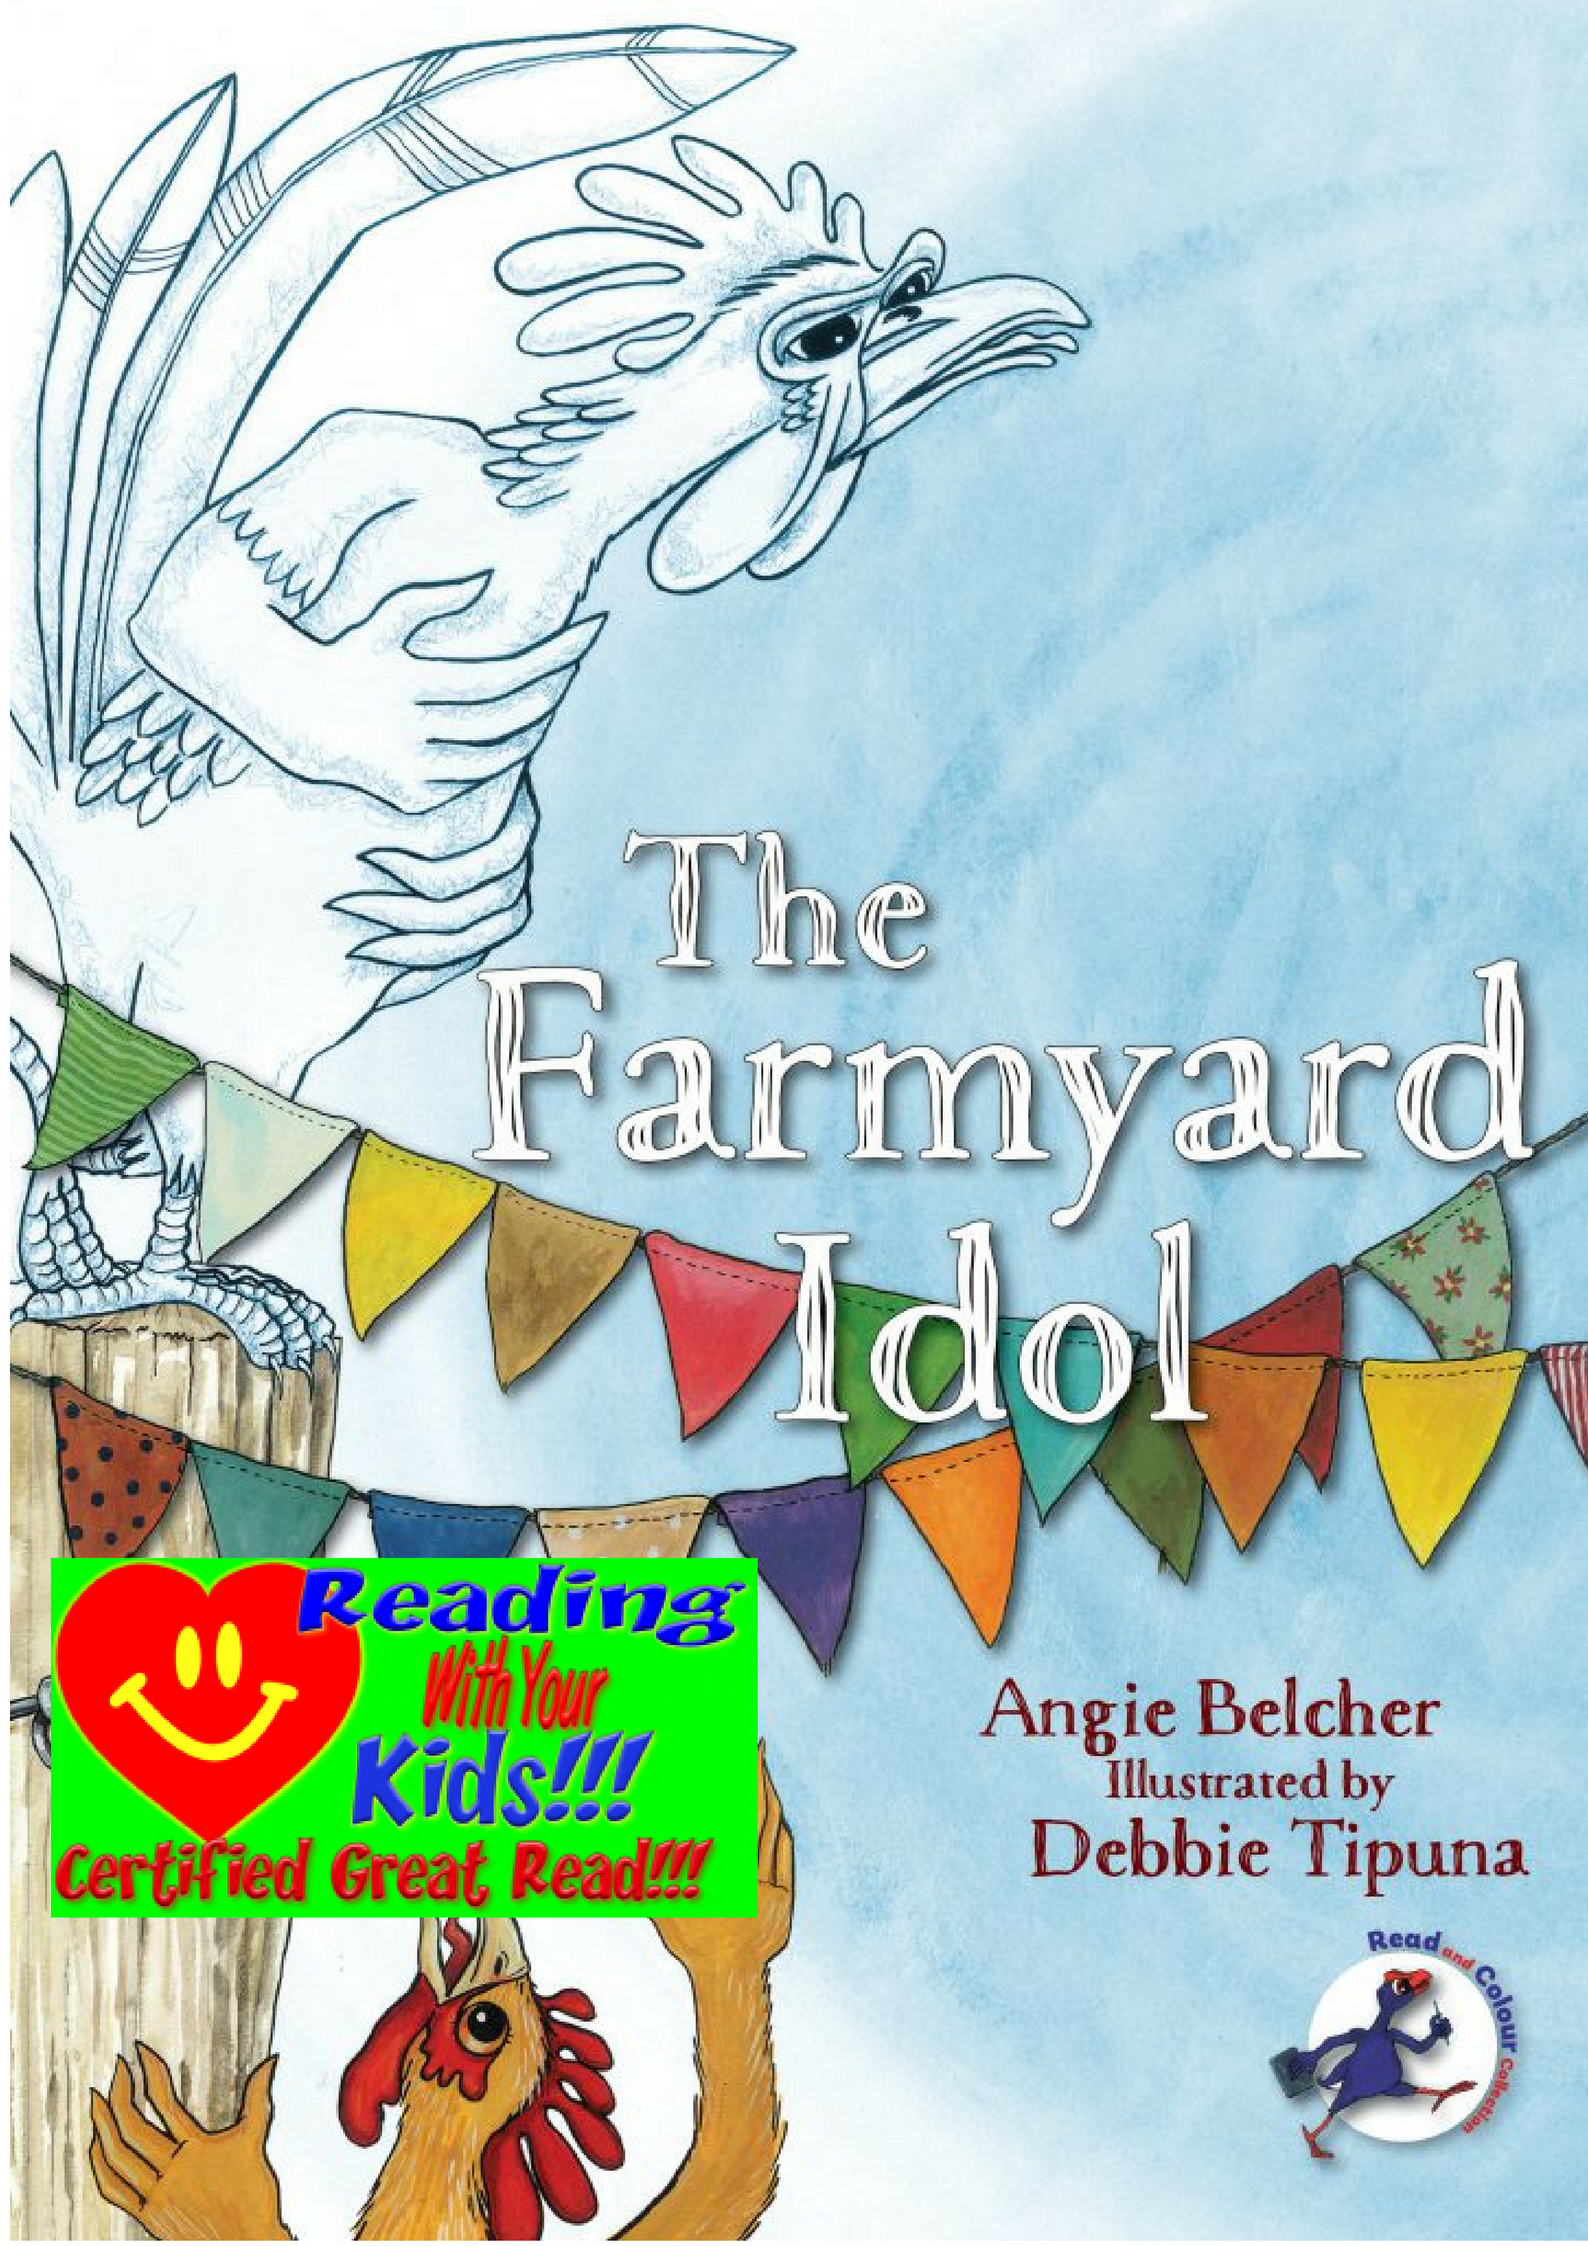 The Farmyard Idol by Angie Belcher